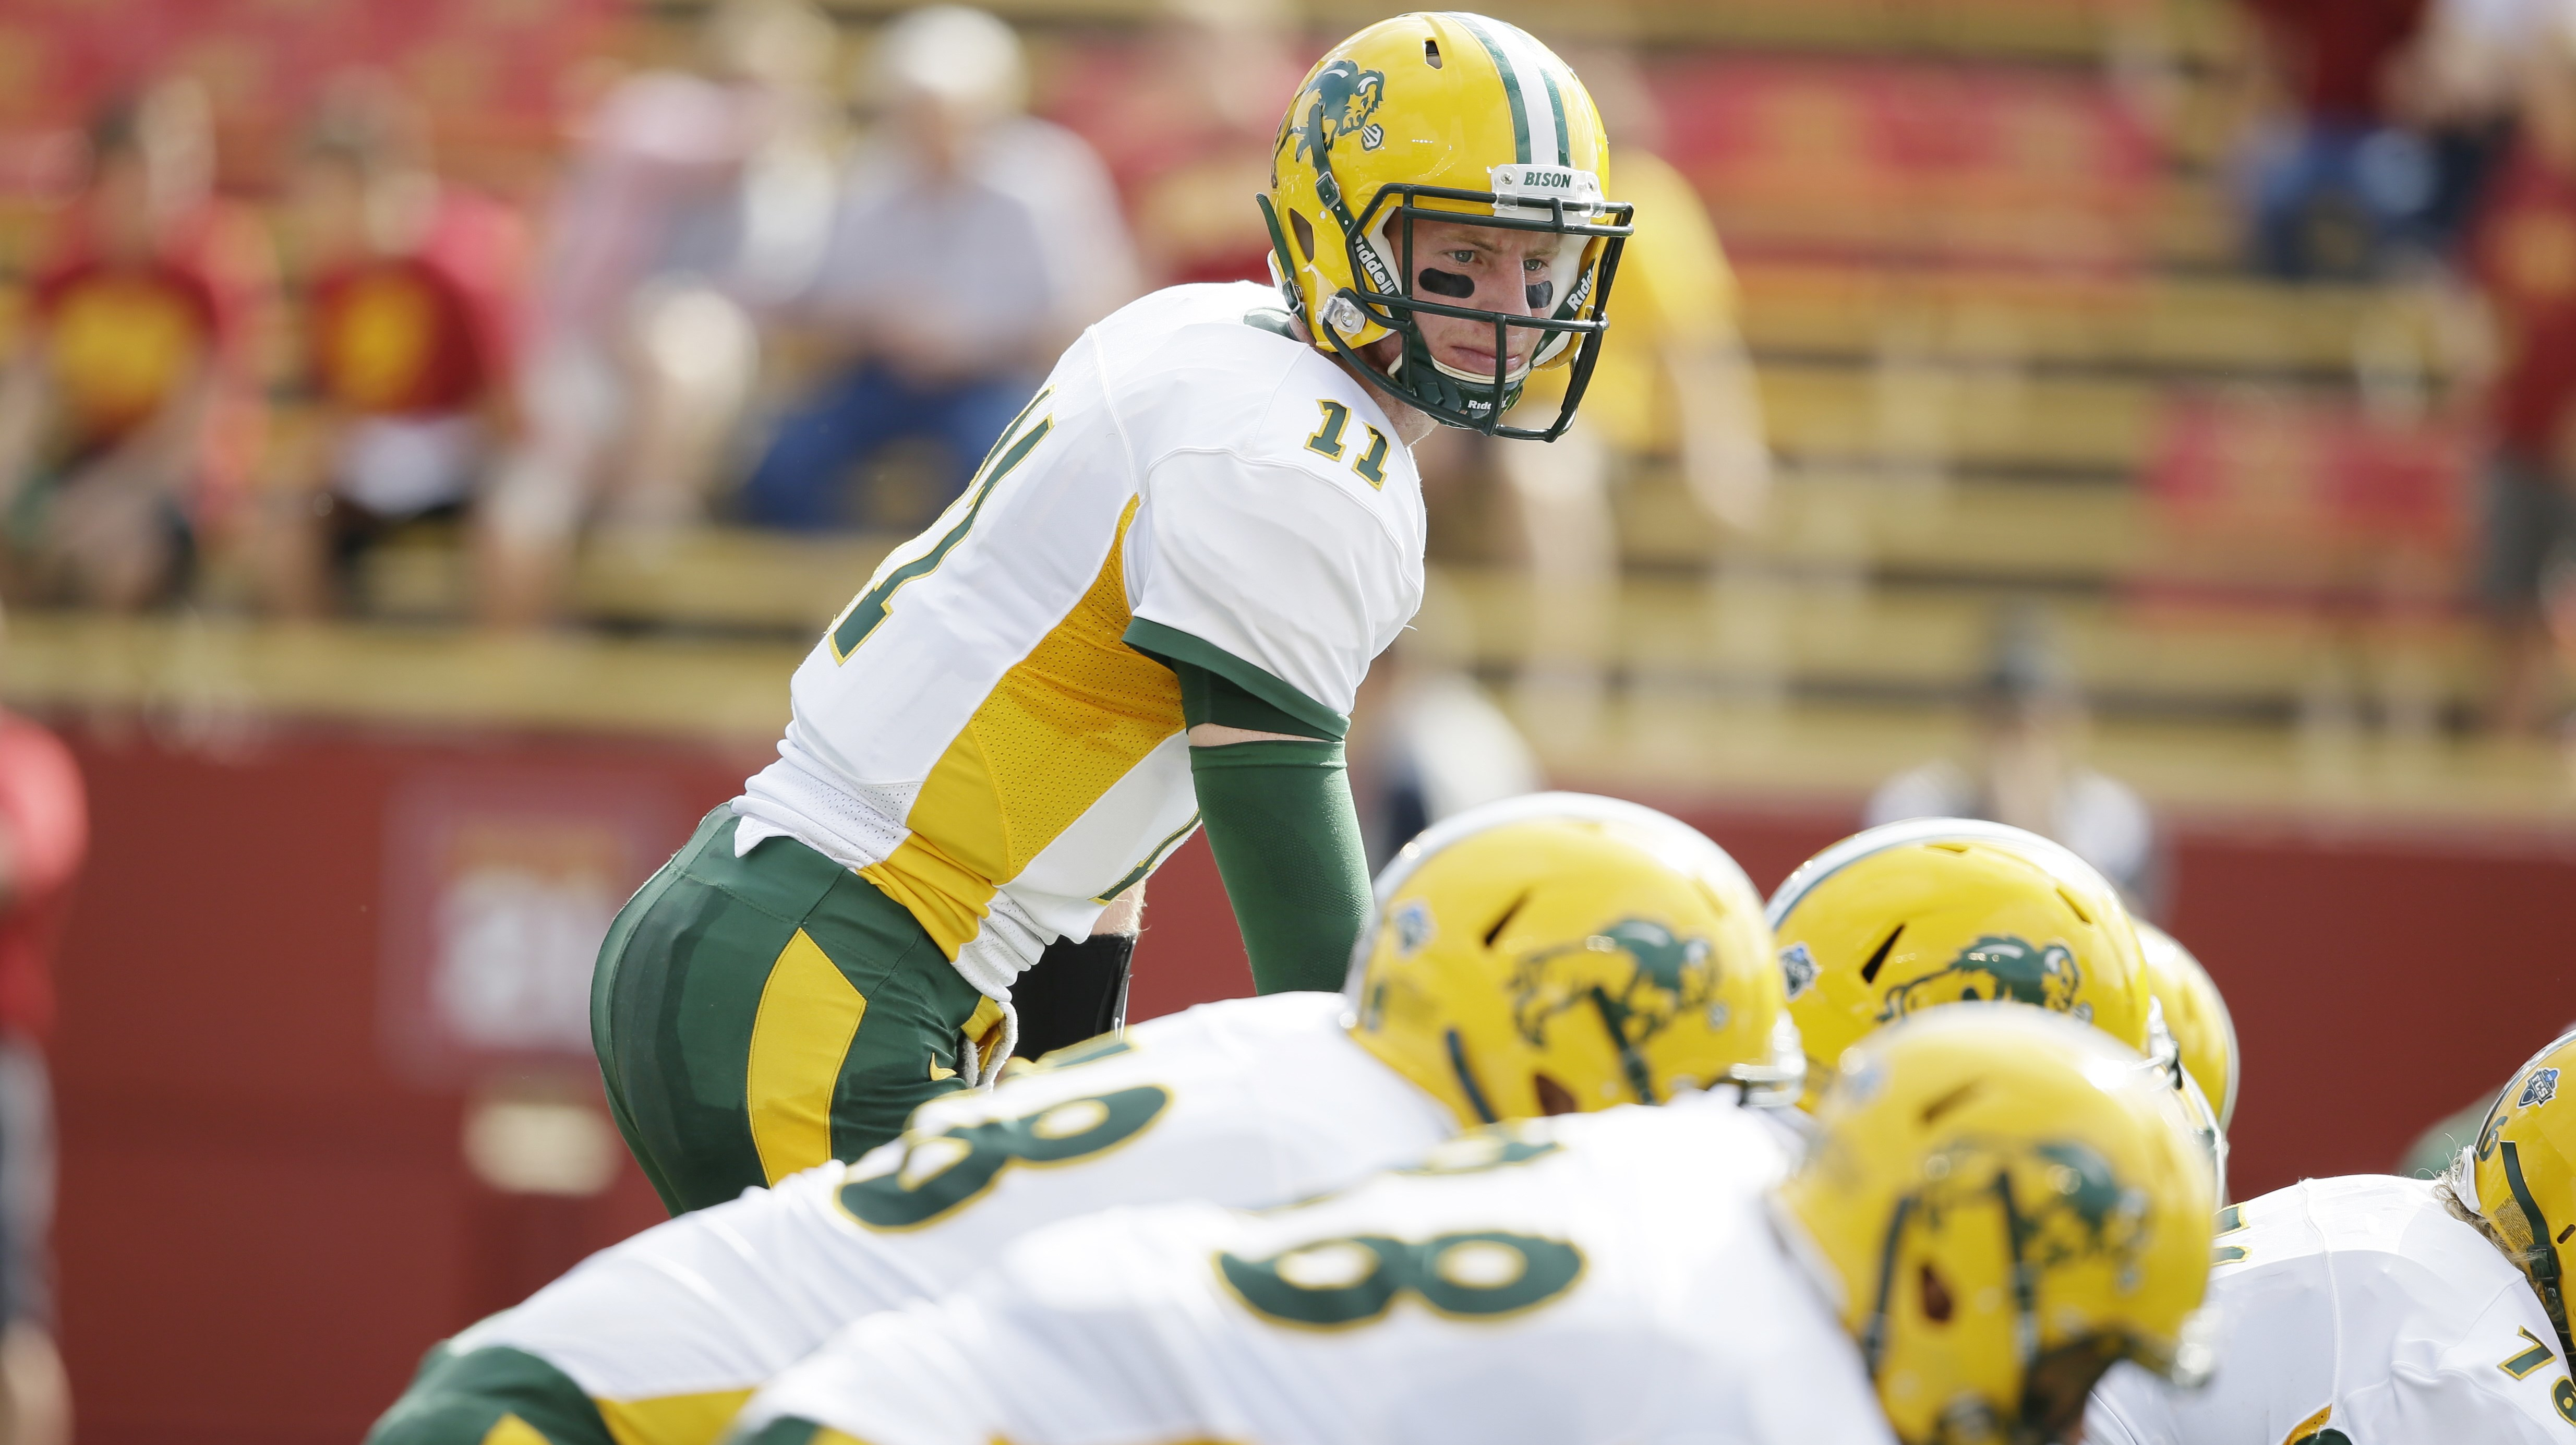 North Dakota State quarterback Carson Wentz (11) warms up before an NCAA college football game against the Iowa State, Saturday, Aug. 30, 2014, in Ames, Iowa. (AP Photo/Charlie Neibergall)